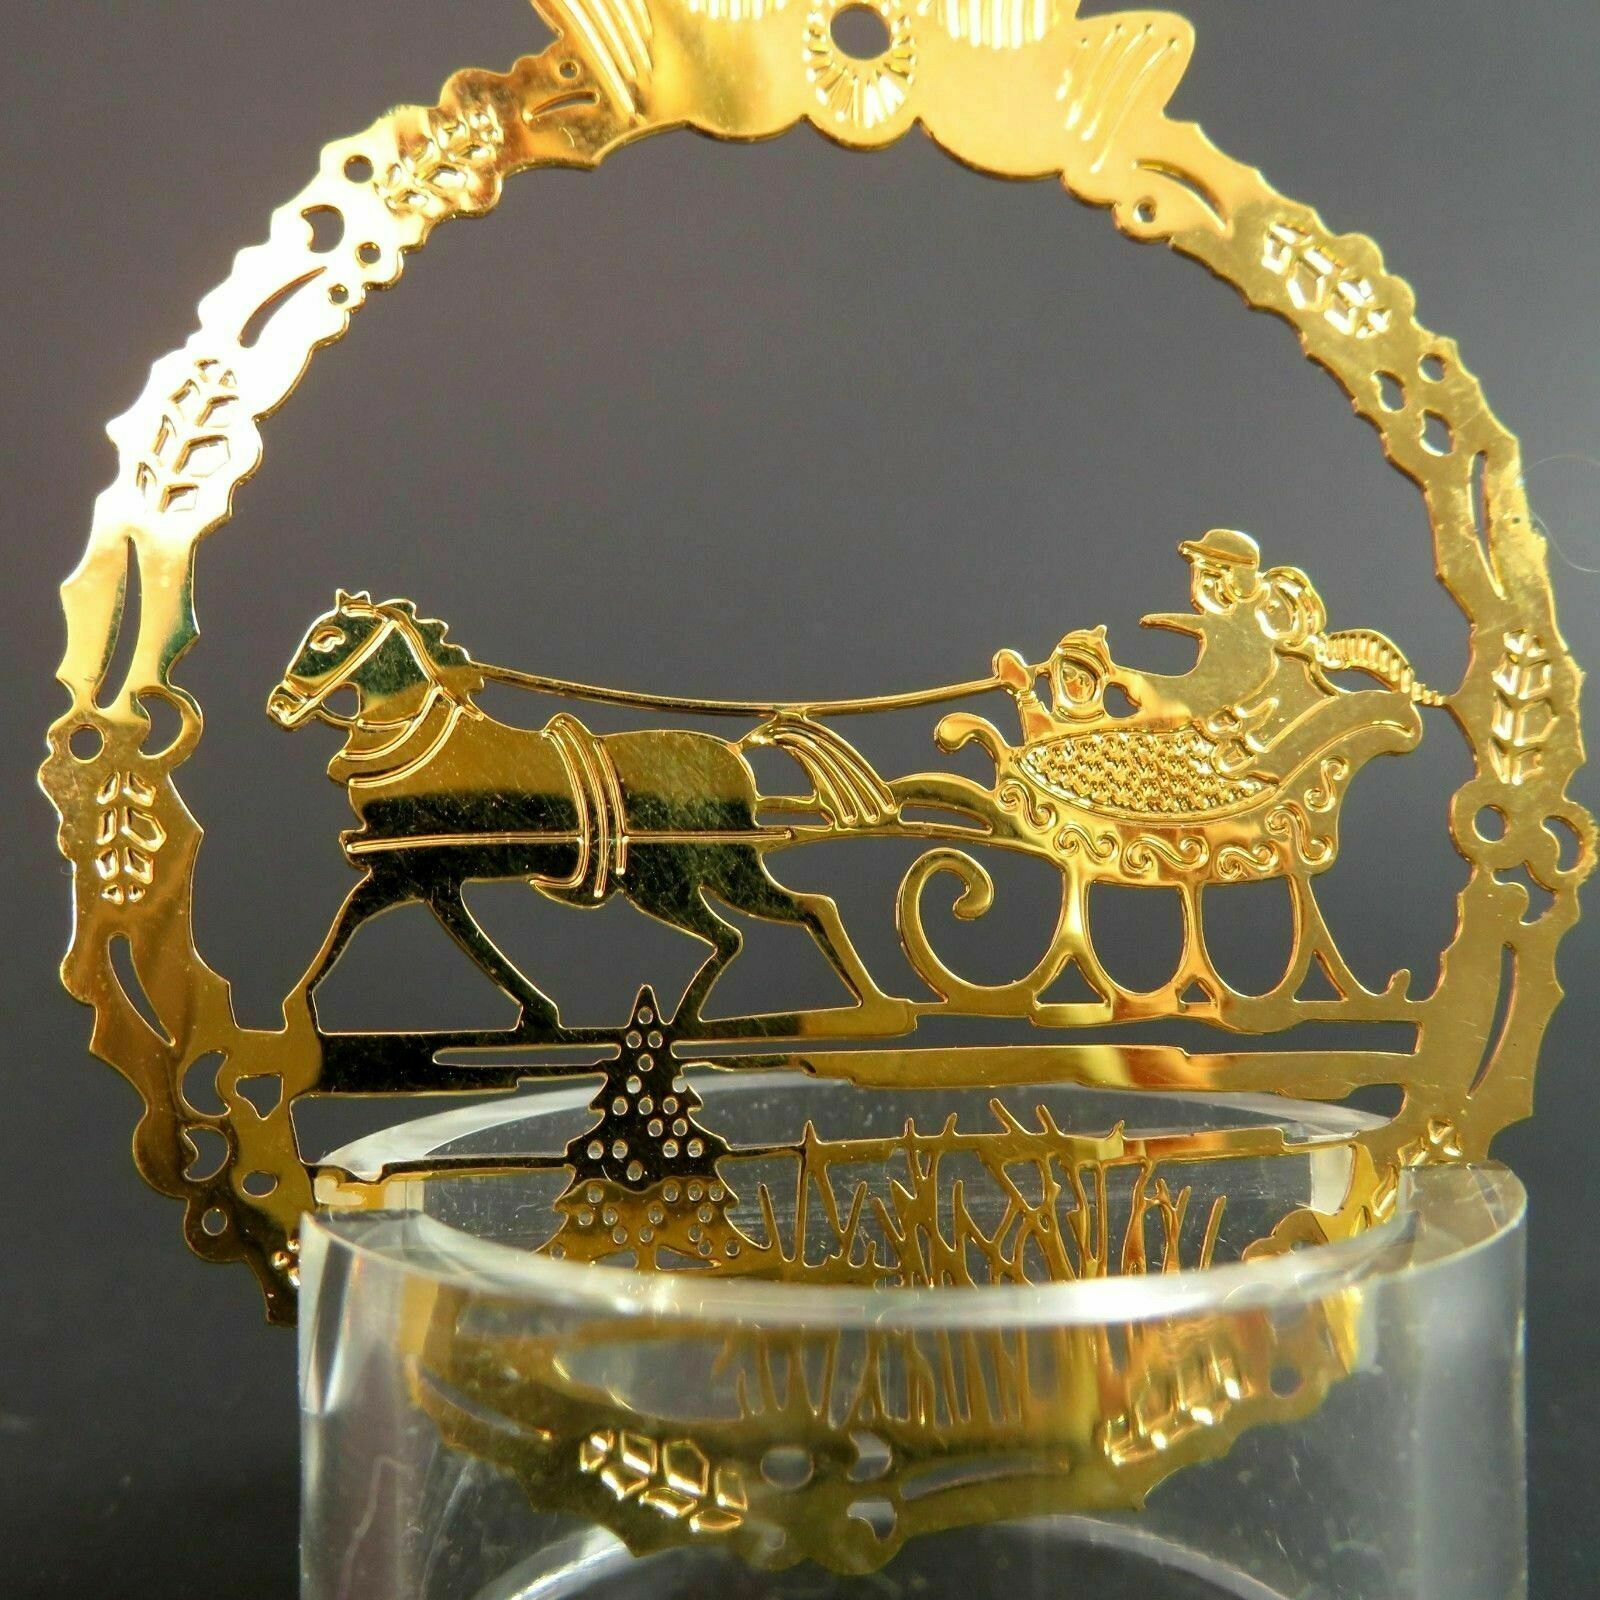 Vintage Sleigh Ride Christmas Ornament Hallmark Gold Metal Etched Embossed Scene image 5